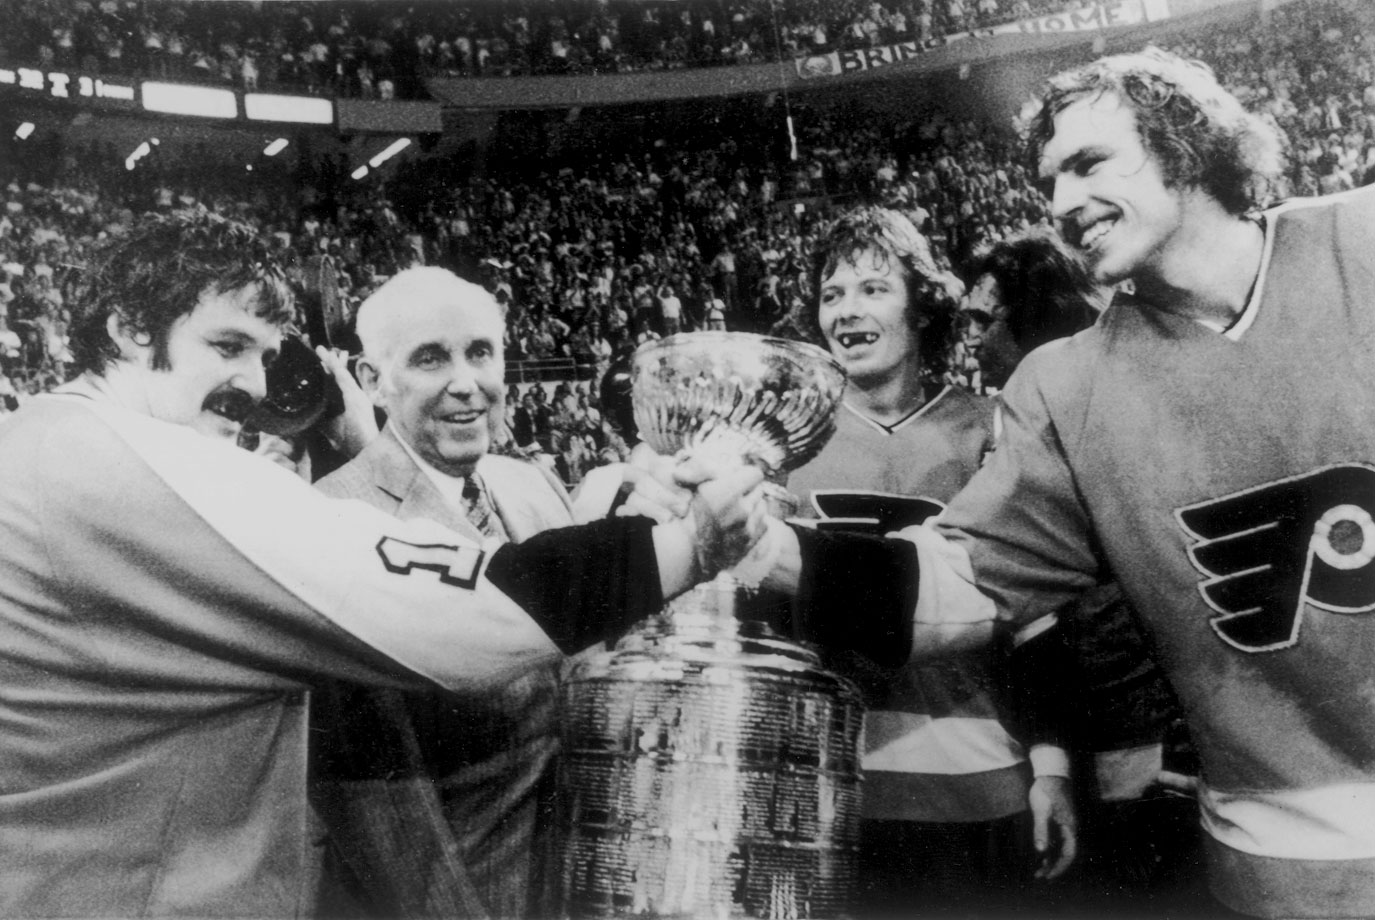 NHL President Clarence Campbell presents Bernie Parent, Bobby Clarke and Bill Clement with the Stanley Cup after their victory over the Sabres in Game 6 on May 27, 1975 in Buffalo, N.Y.